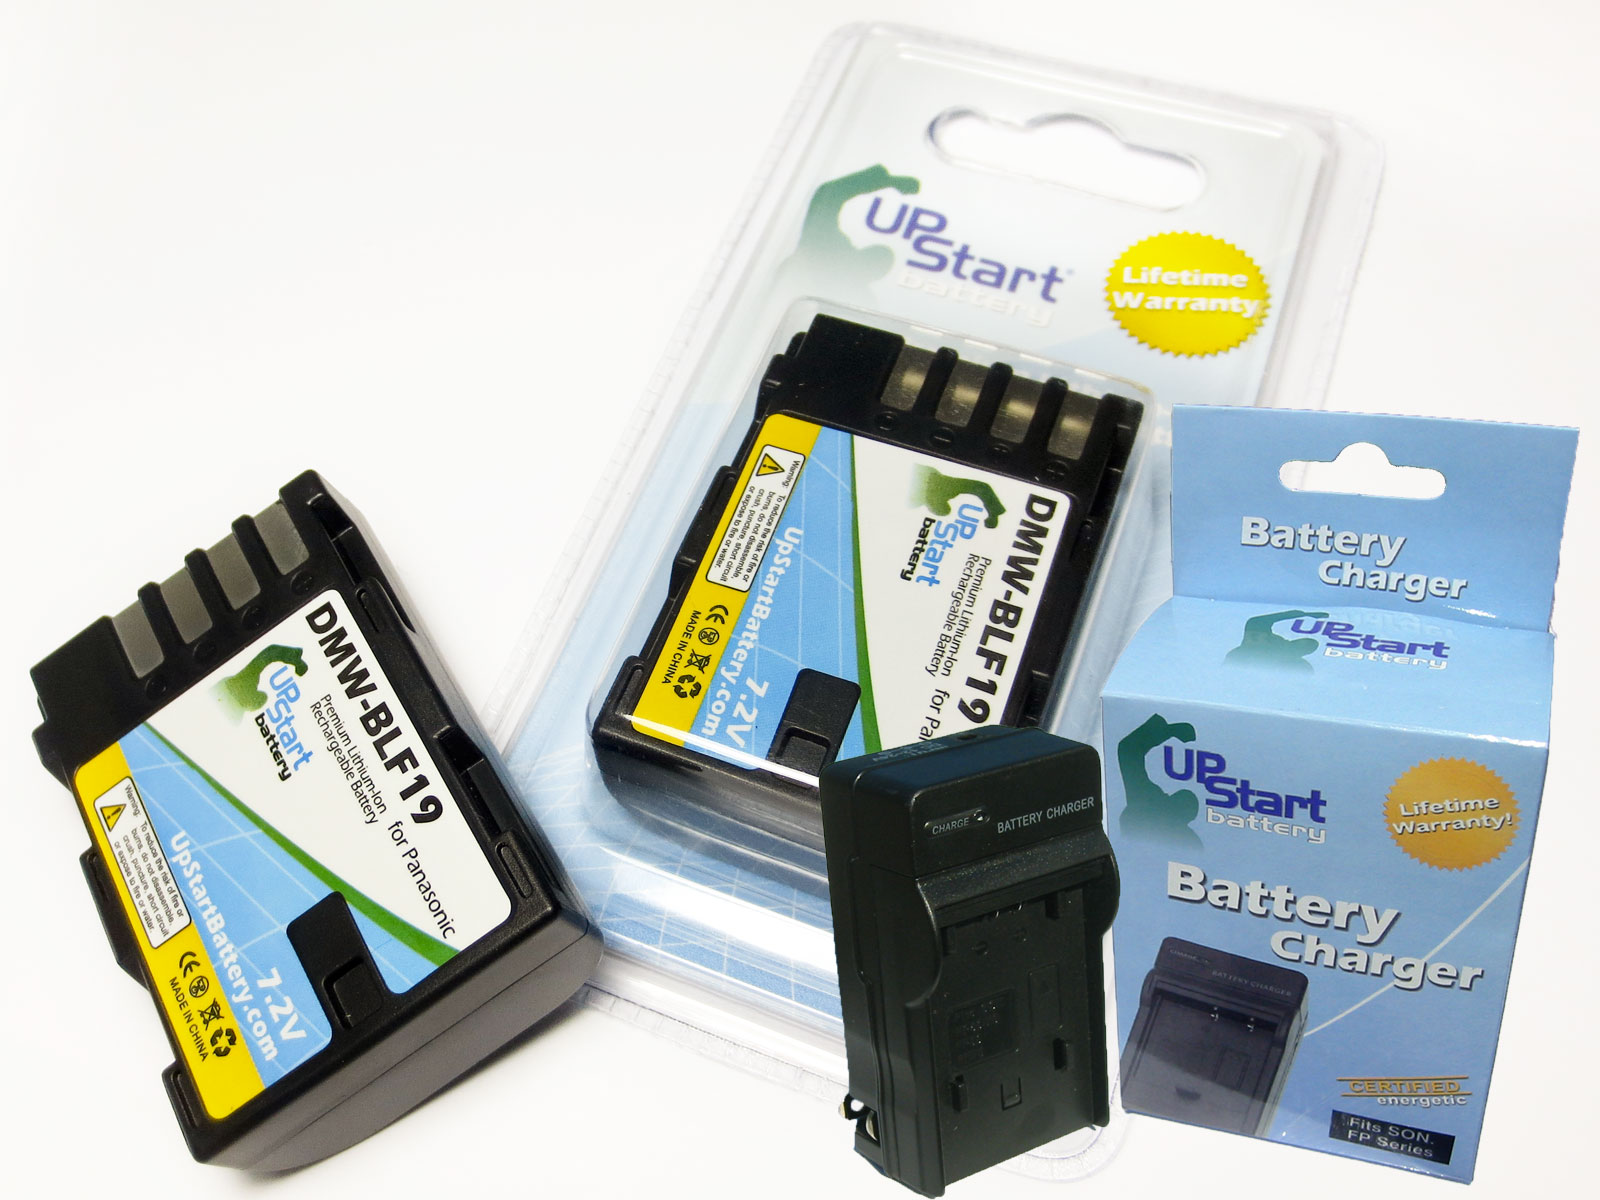 UpStart Battery 2x Pack - Panasonic Lumix DMC-GH3AGK Digital Camera Battery + Charger - Replacement Kit for Panasonic DMW-BLF19 at Sears.com